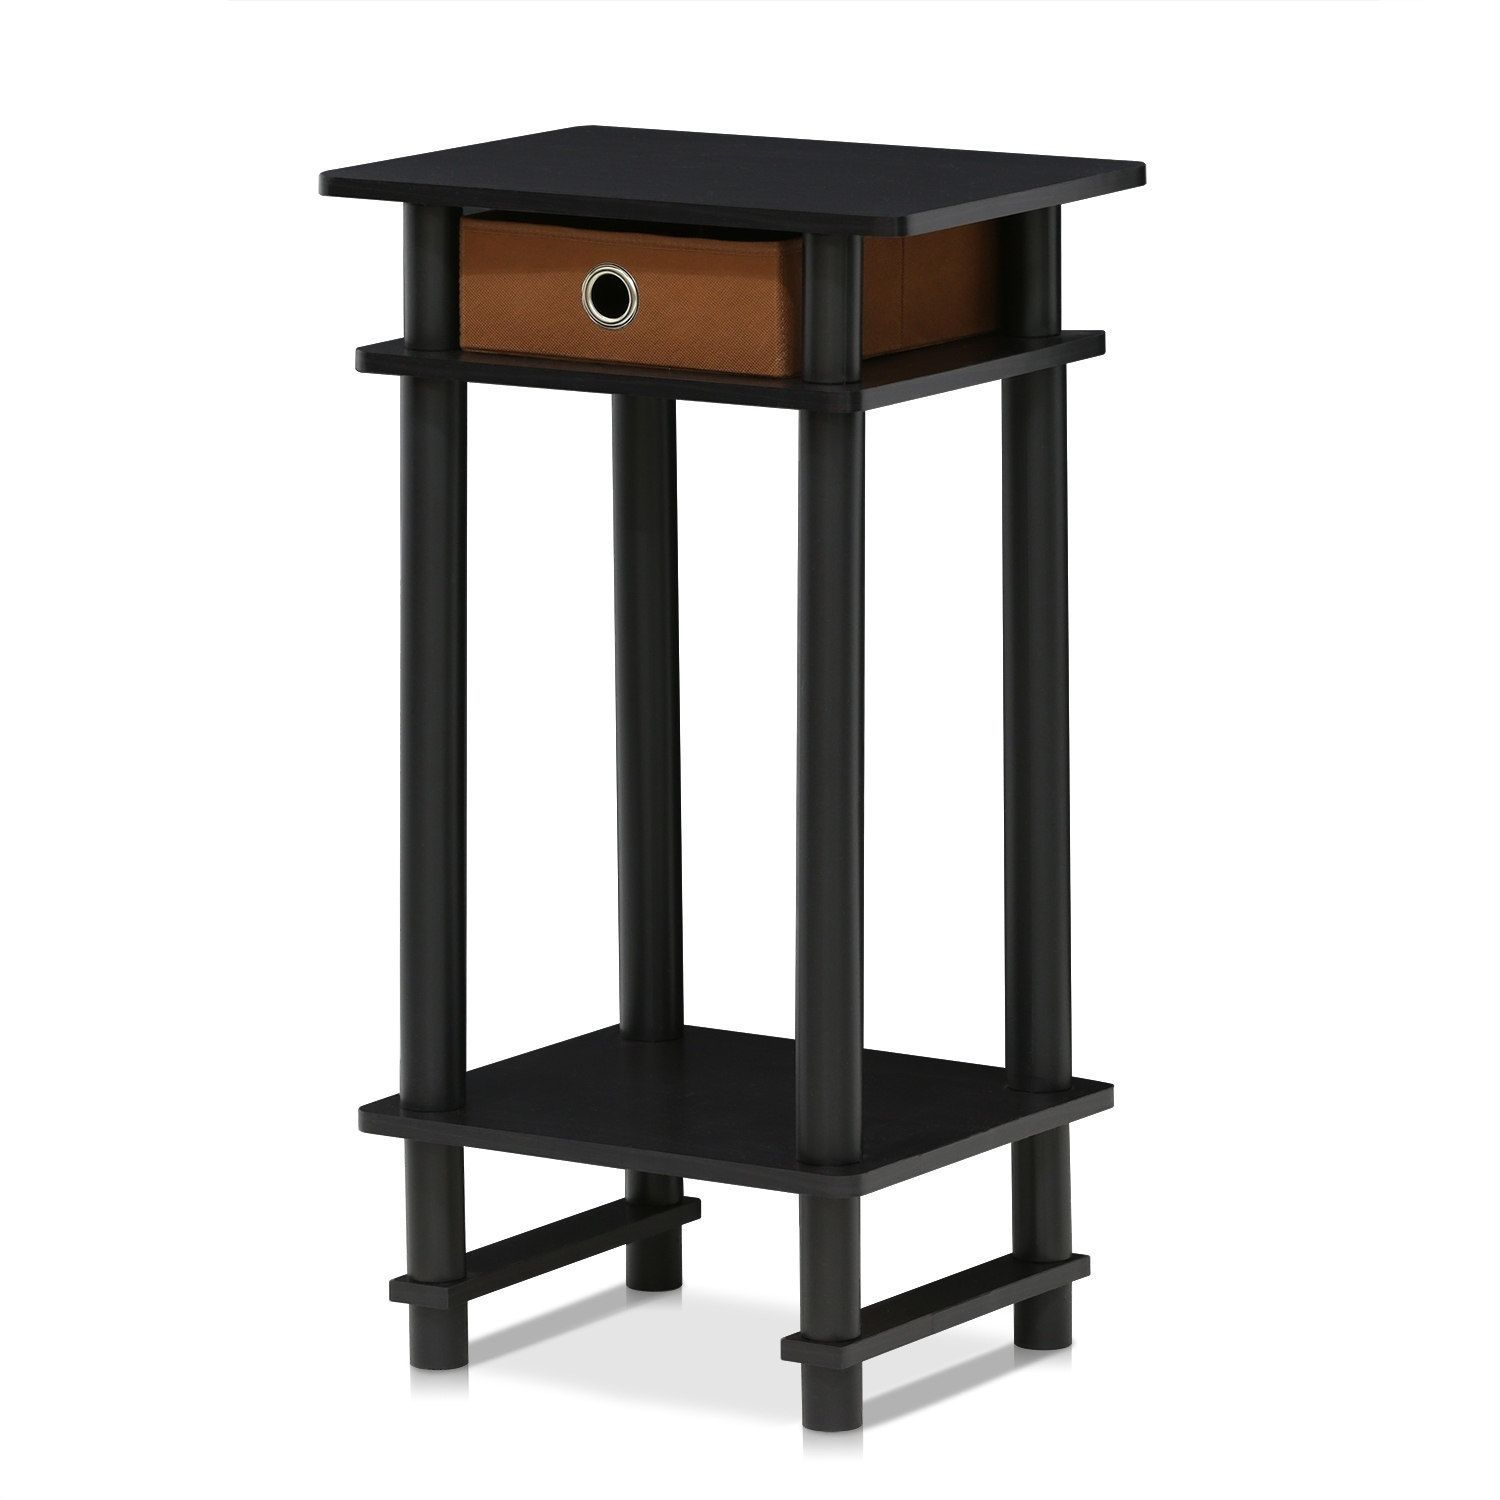 Furinno Turn N Tube Tall End Table with Bin Espresso Brown